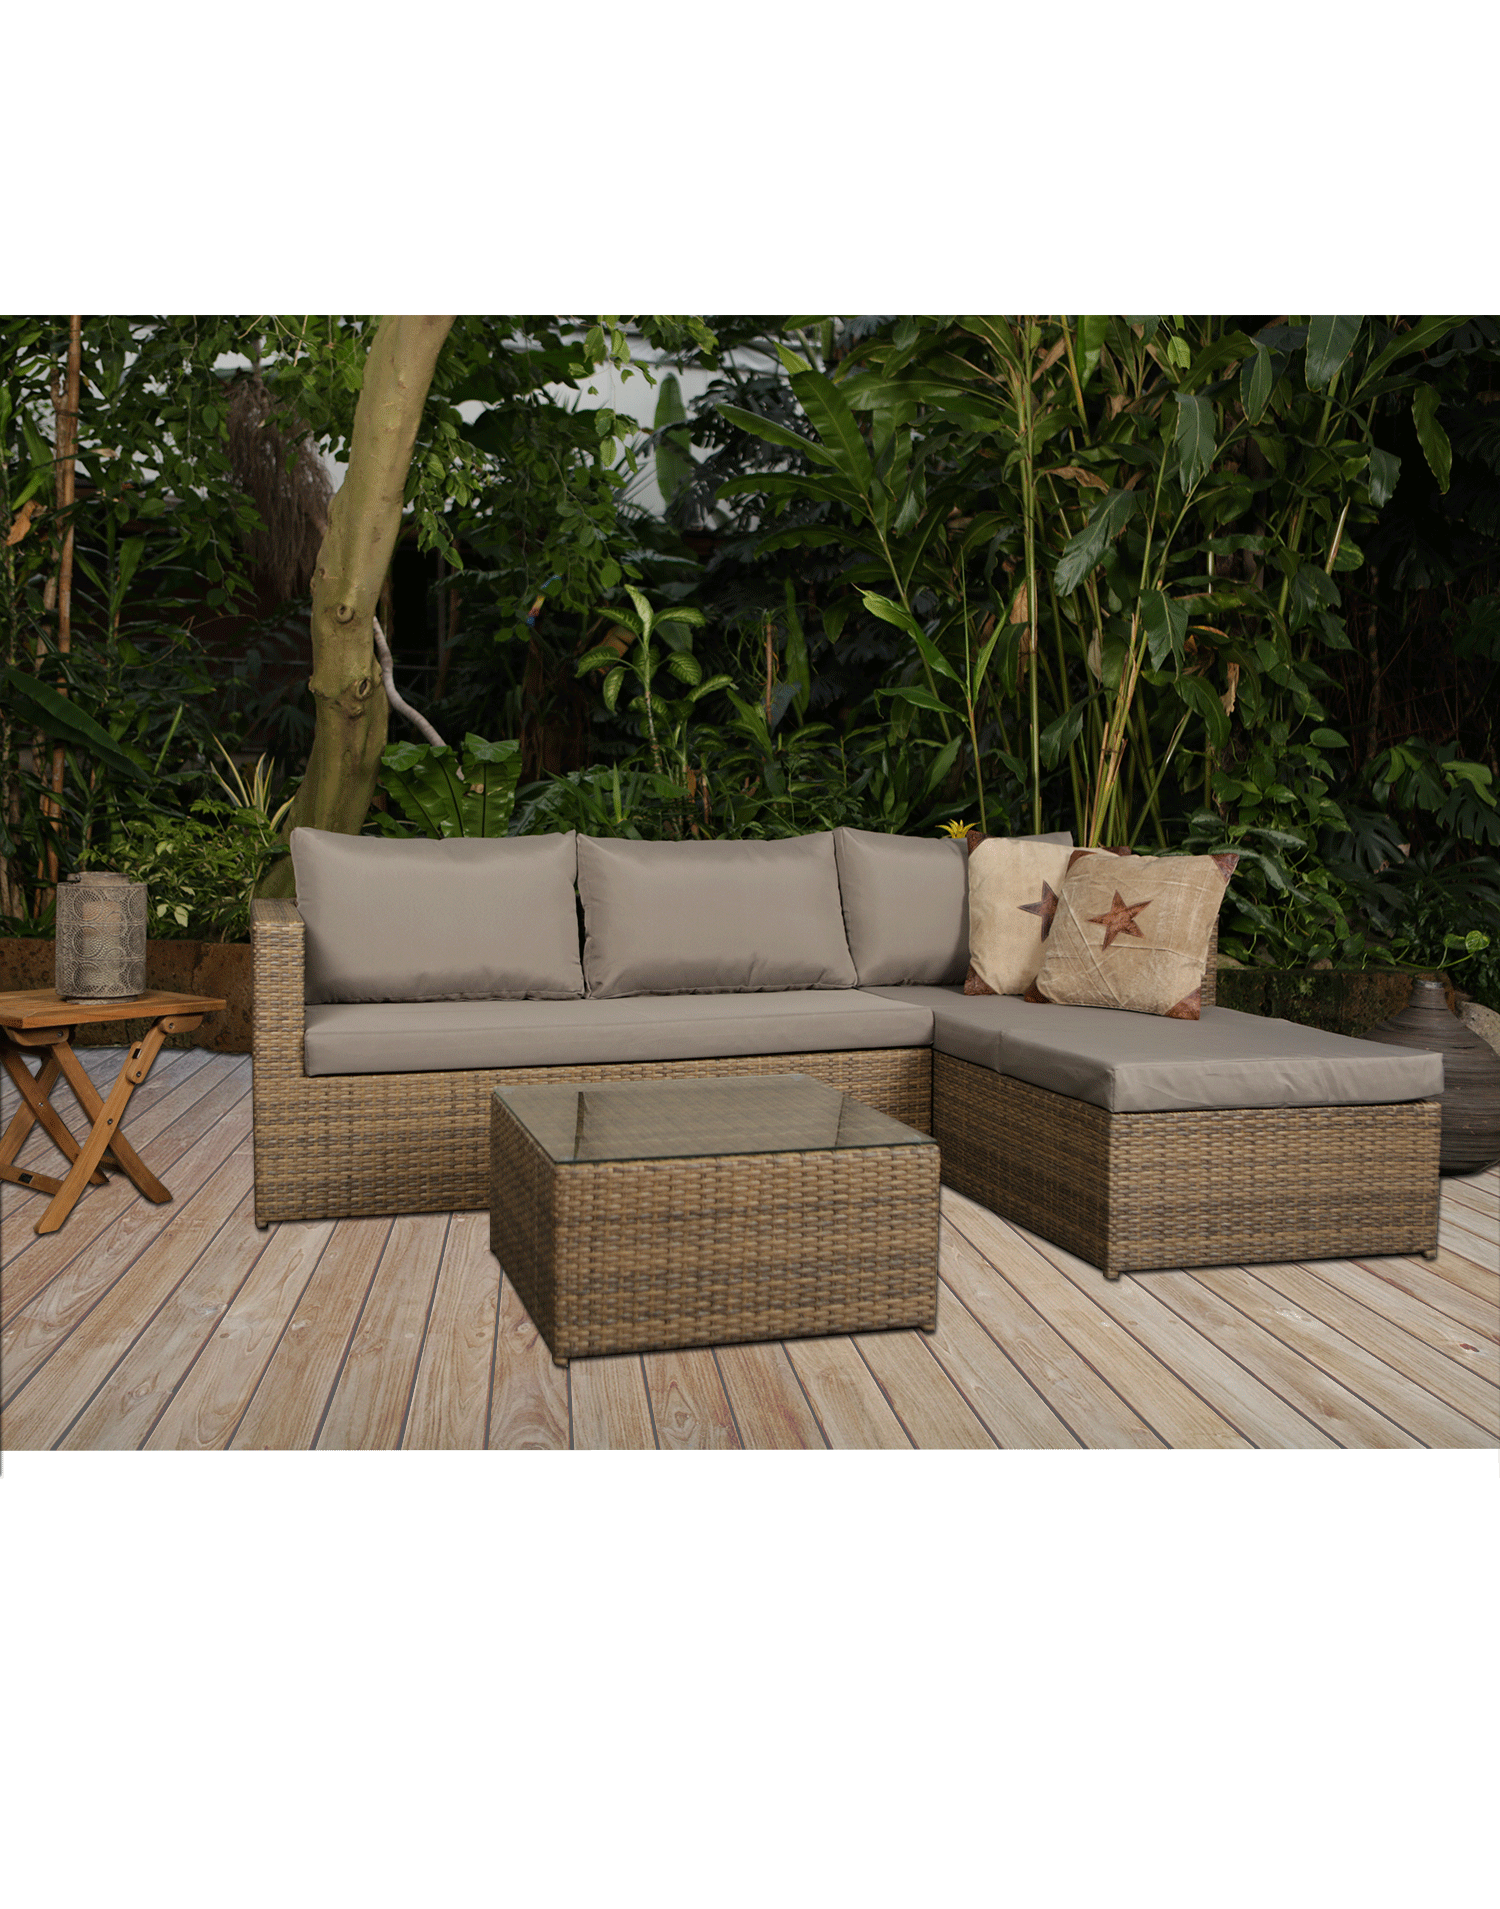 Rattan lounge set malibu top aktion - Gartenmobel lounge rattan ...